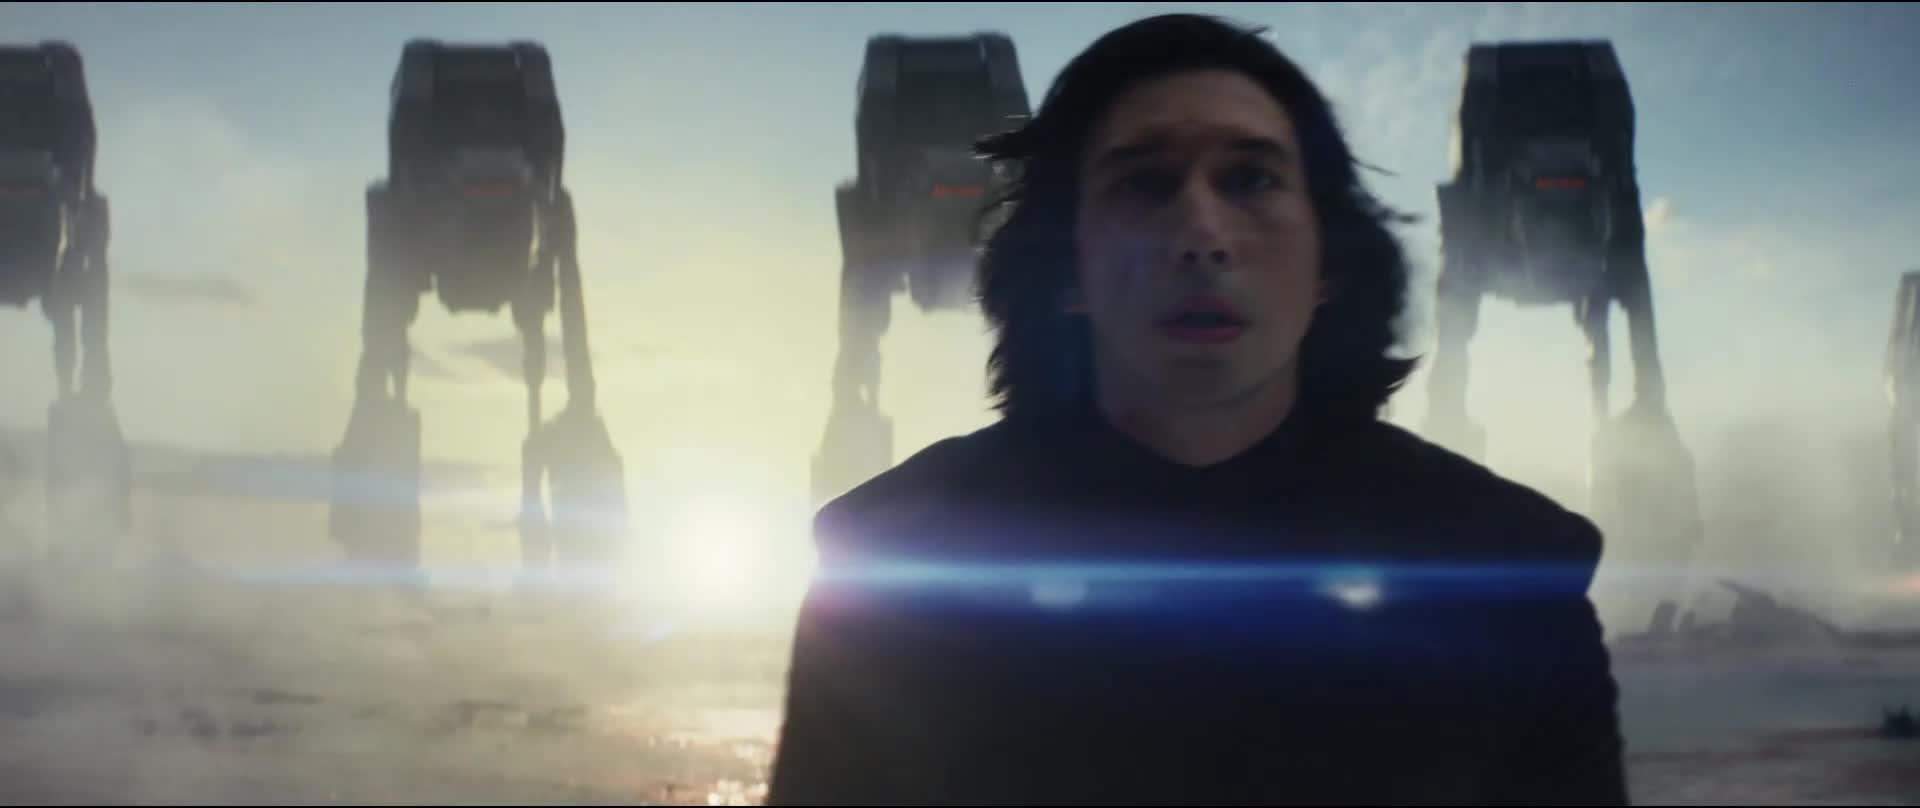 adam driver, angry, celebs, kylo ren, mad, scream, star wars, star wars the last jedi, the last jedi, Kylo Ren Scream GIFs